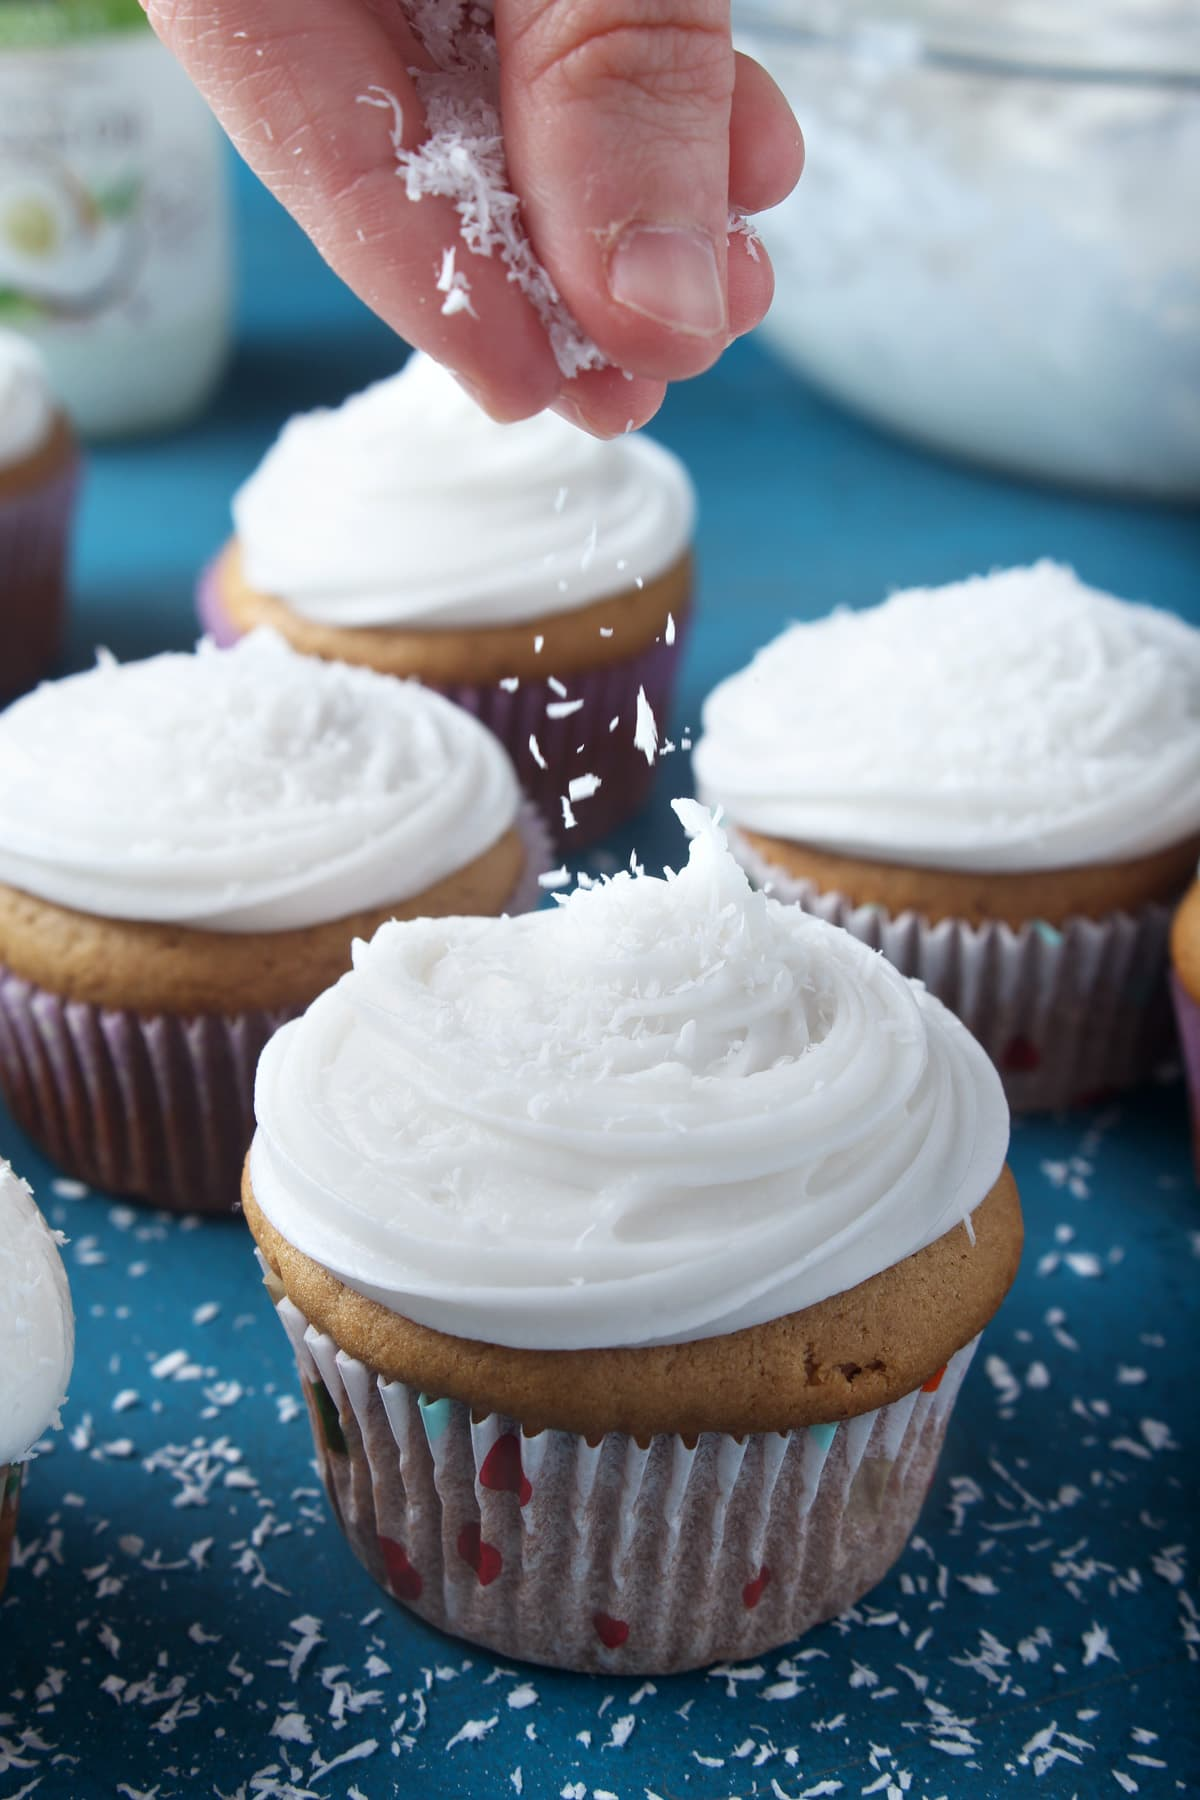 picture of coconut shavings being sprinkled on top of a cupcake